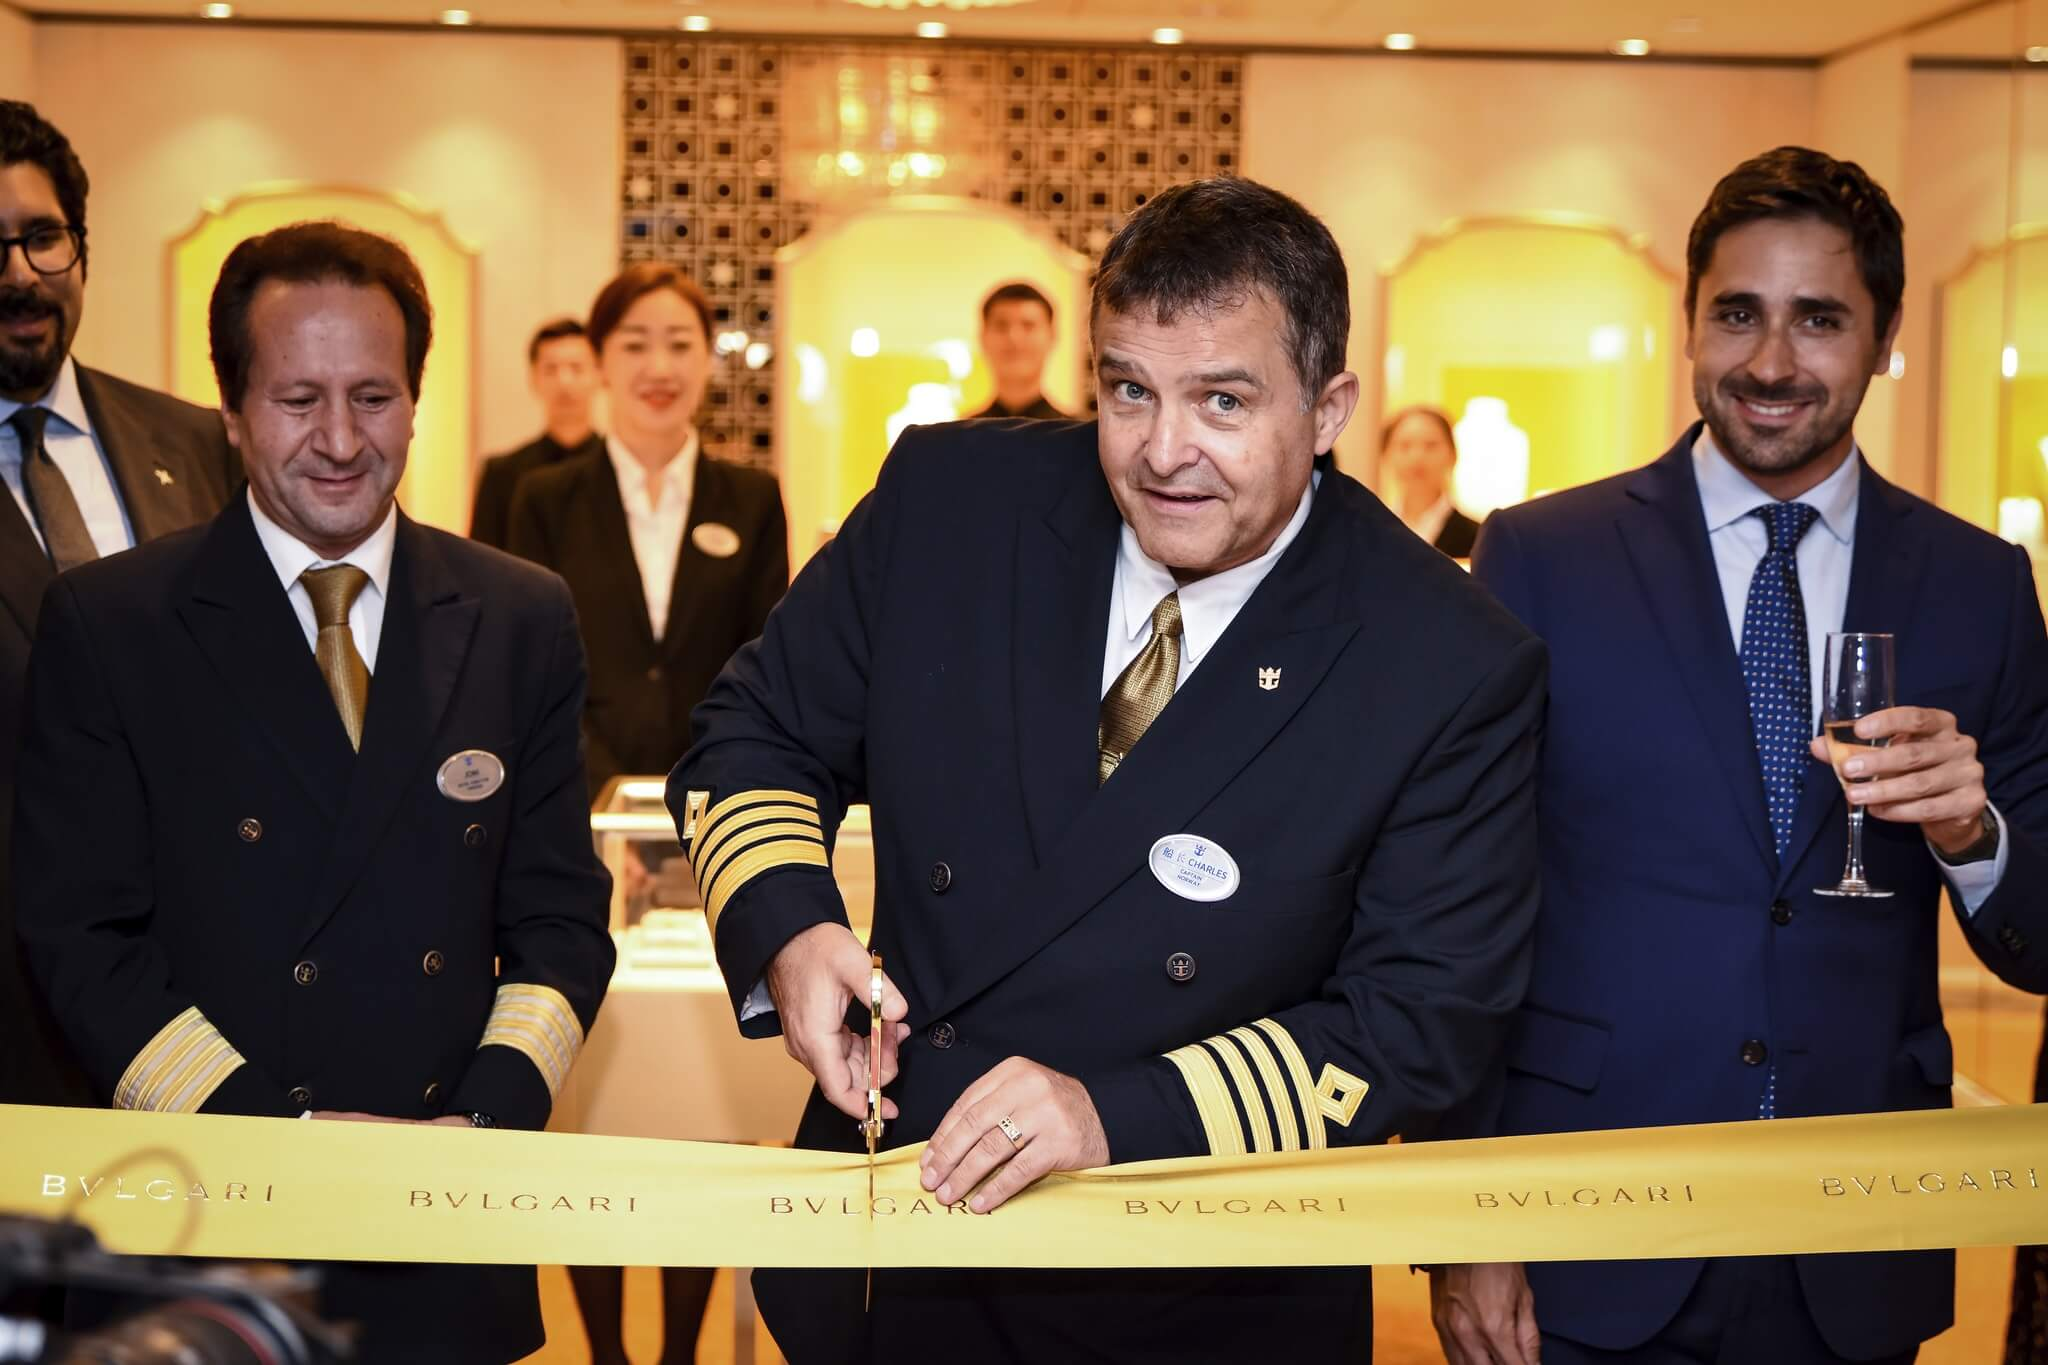 Royal Caribbean debuts largest Bvlgari boutique at sea in Asia